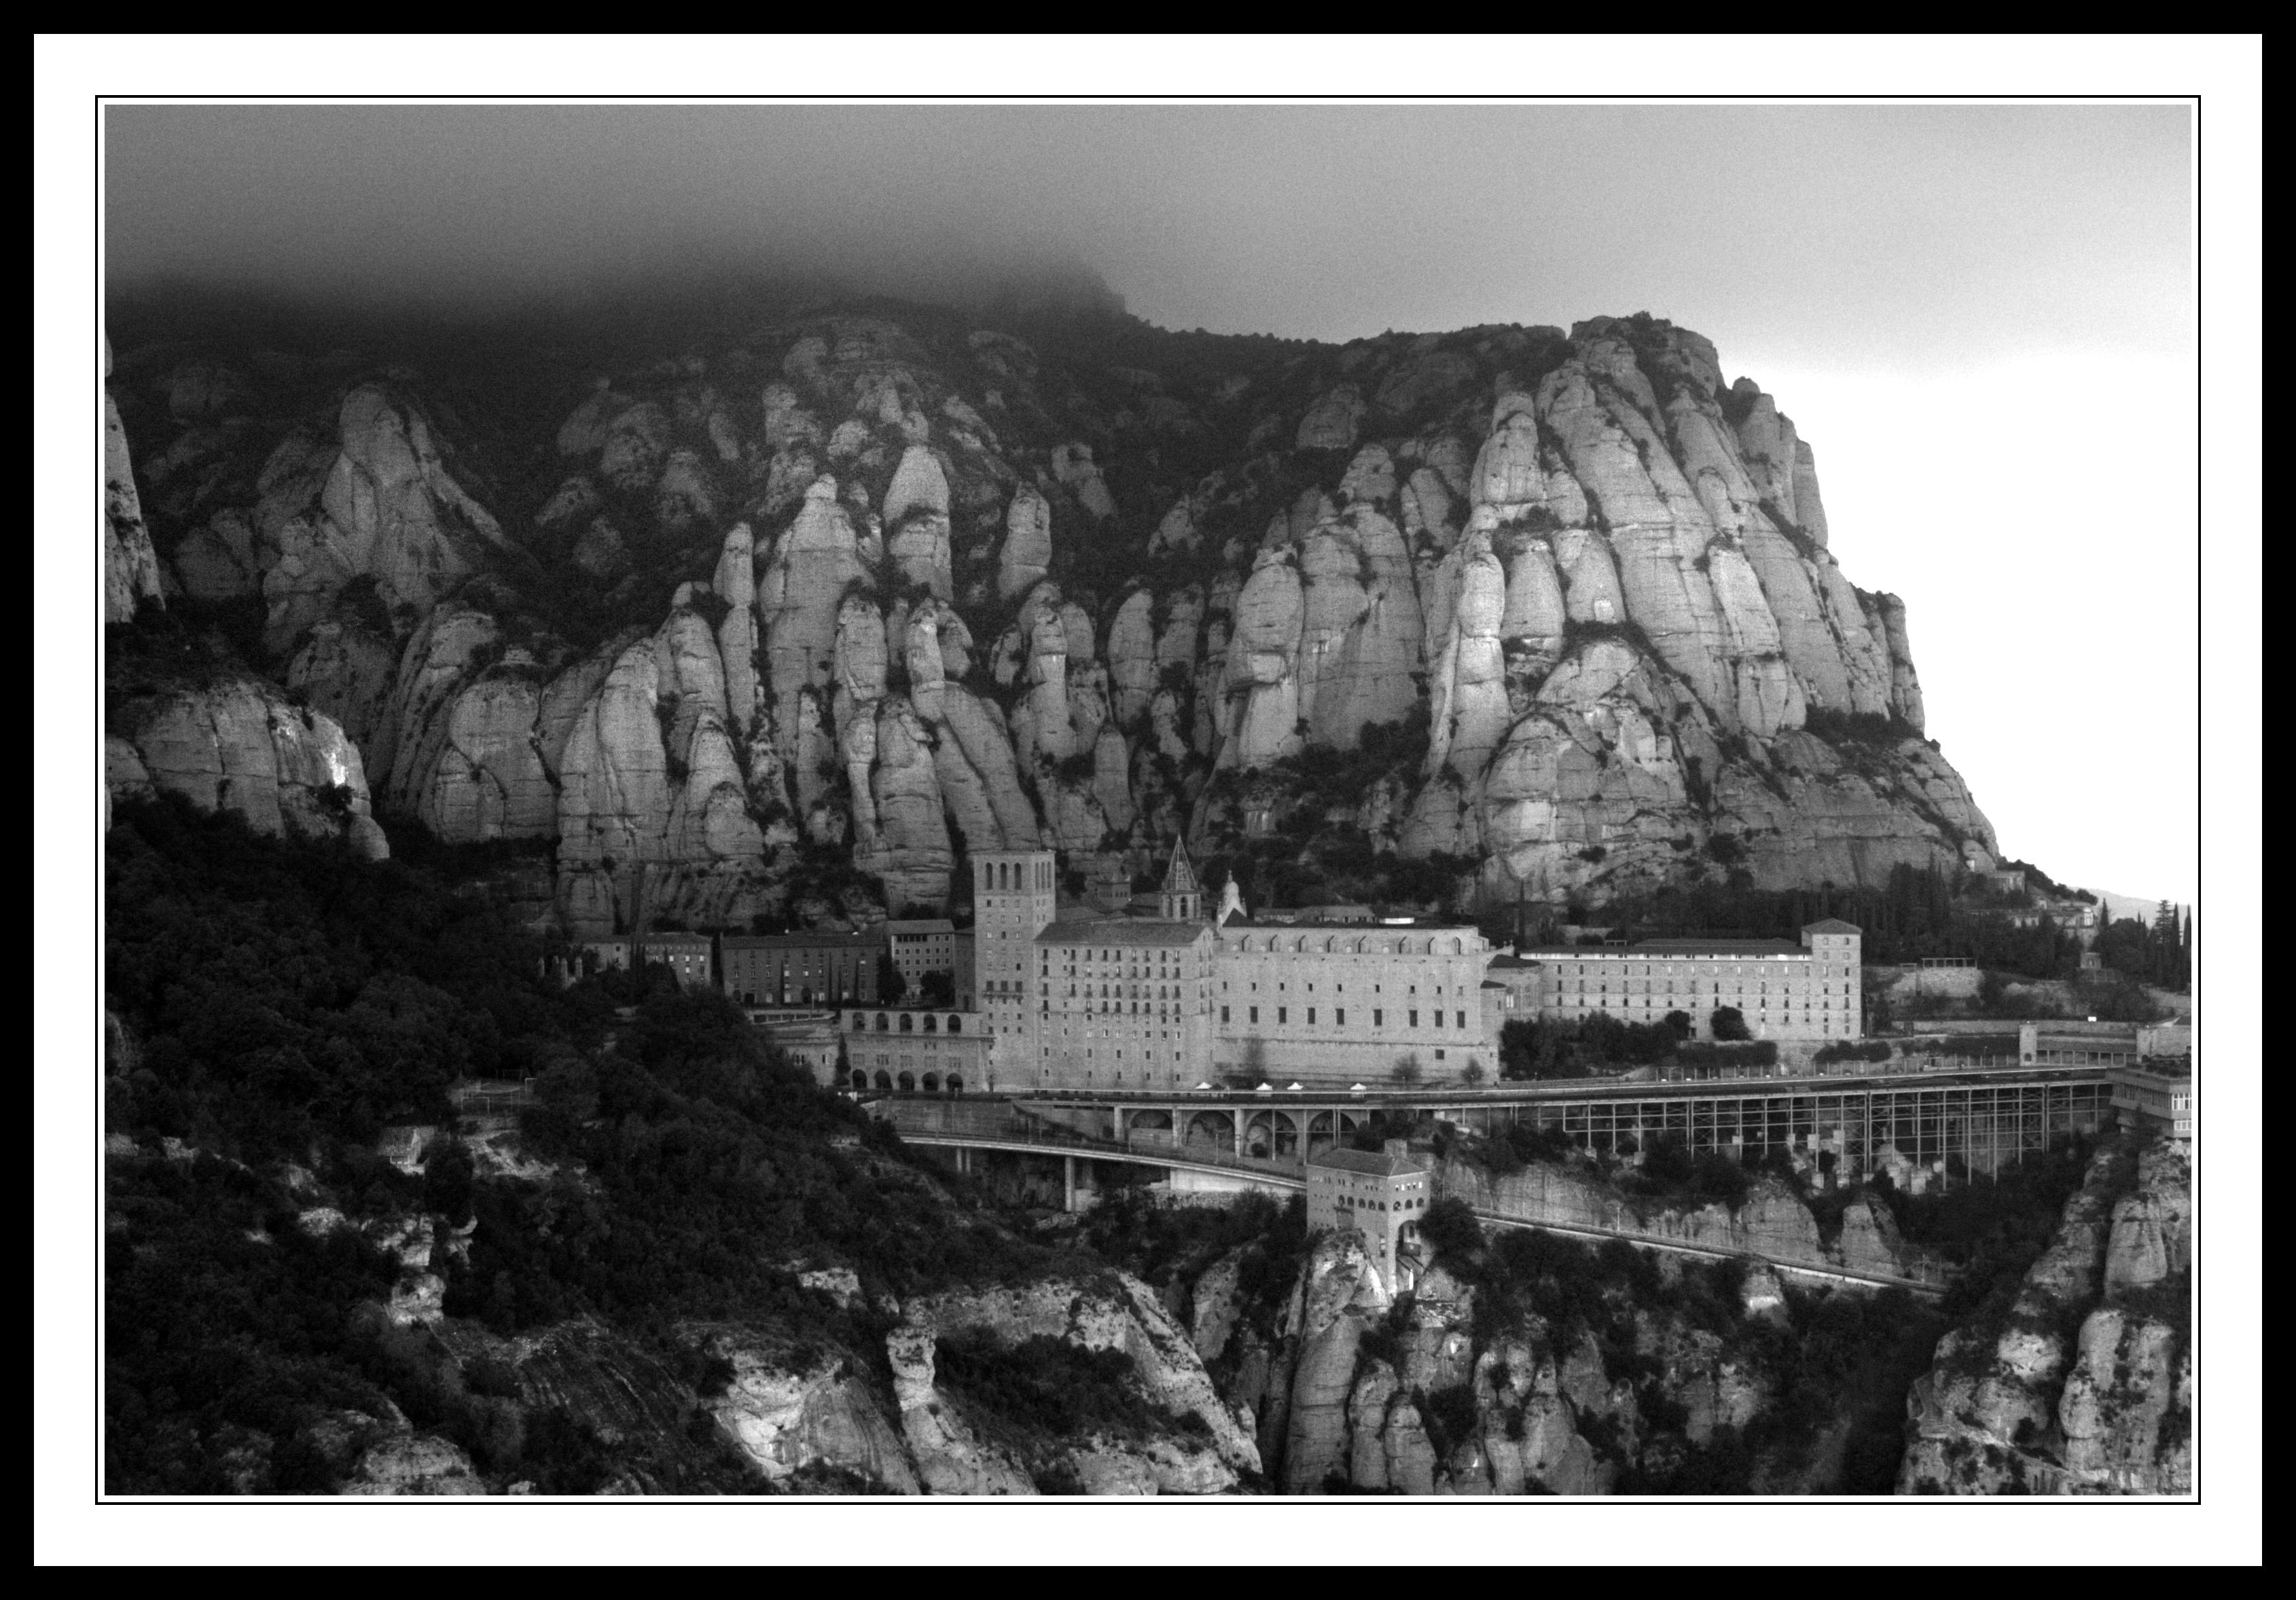 Montserrat Covered in Mist